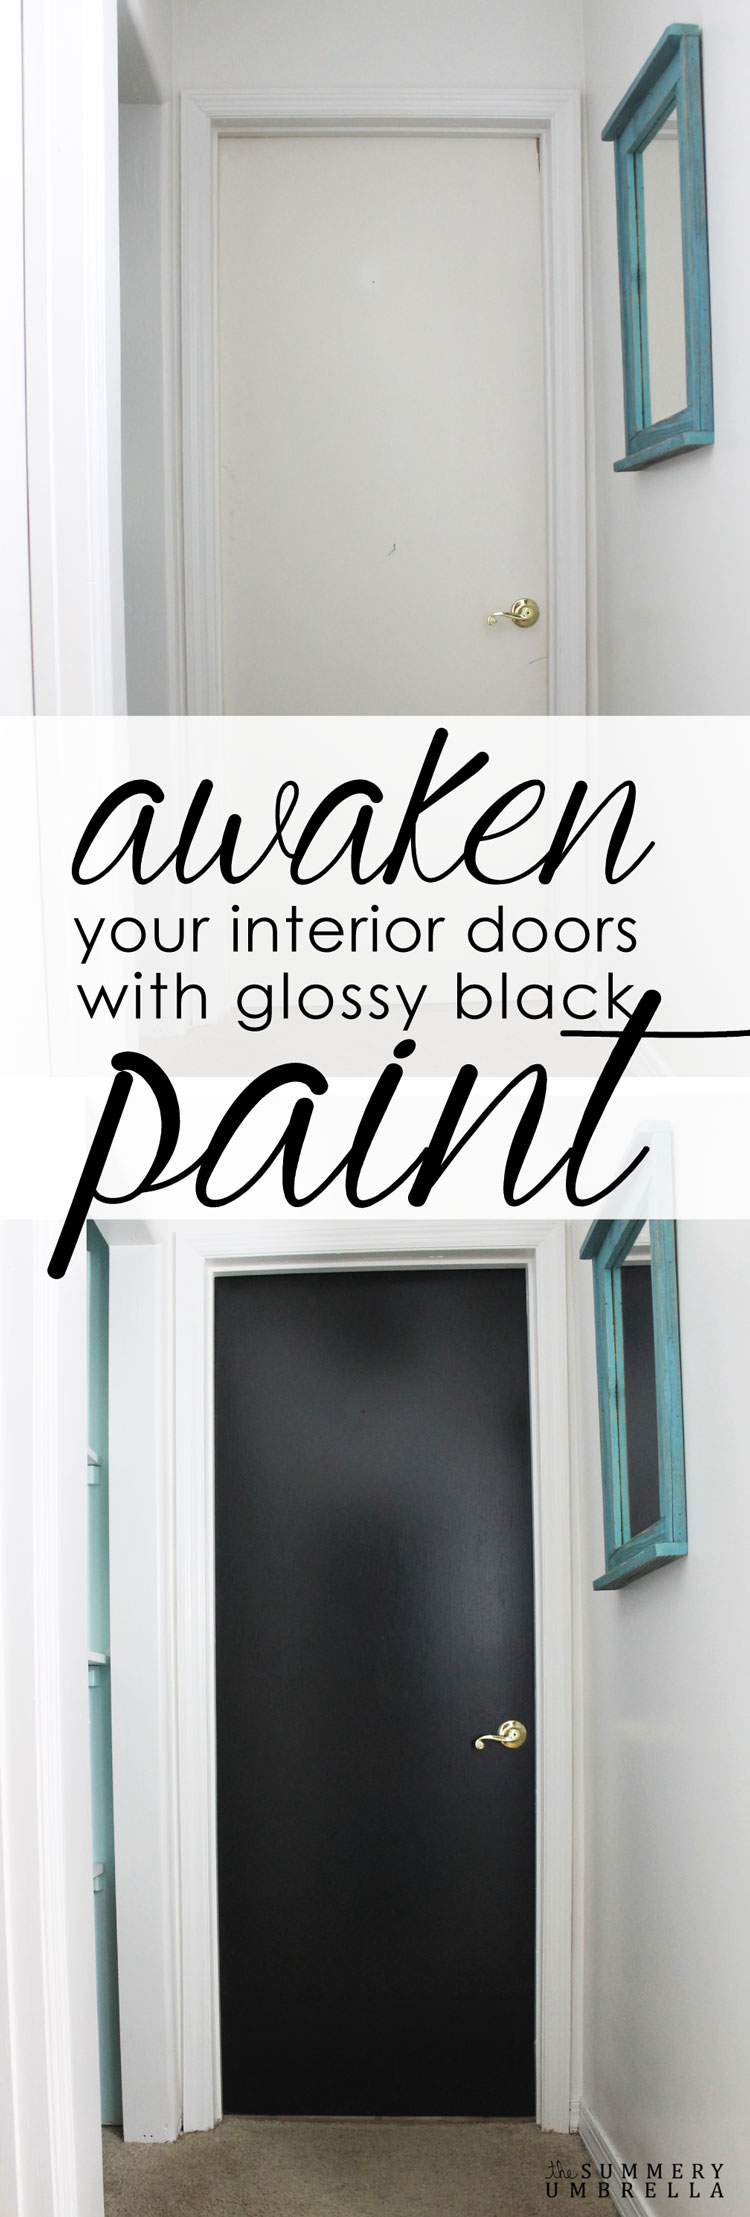 Awaken your boring interior doors with a gorgeous pop of glossy black paint. You will be absolutely amazed how fantastic your new black interior doors look!